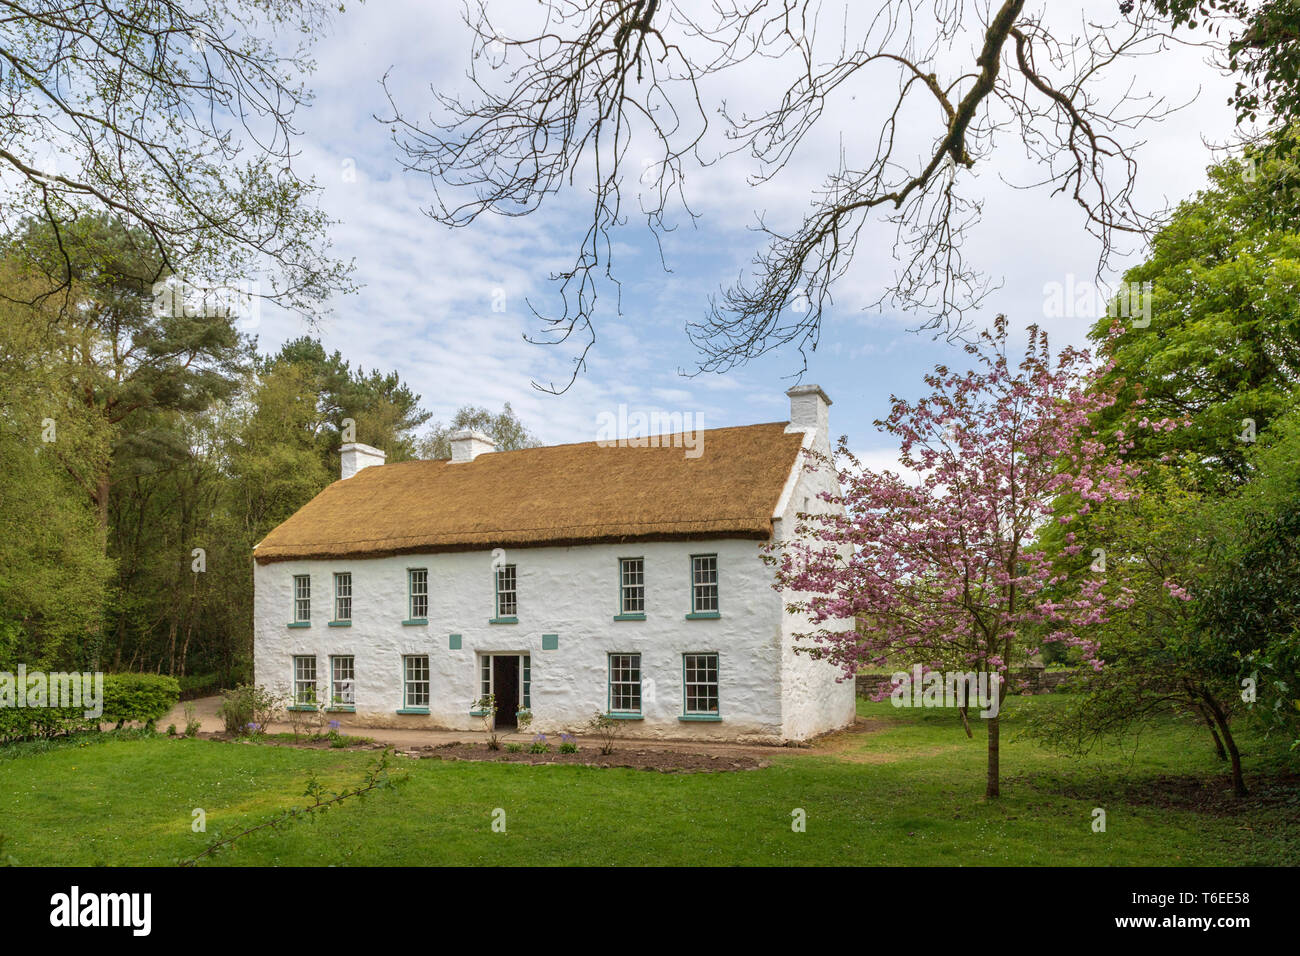 Aghalane House, the ancestral home of Hugh Campbell, reconstructed at the Ulster American Folk Park, Omagh, County Tyrone, Northern Ireland. - Stock Image